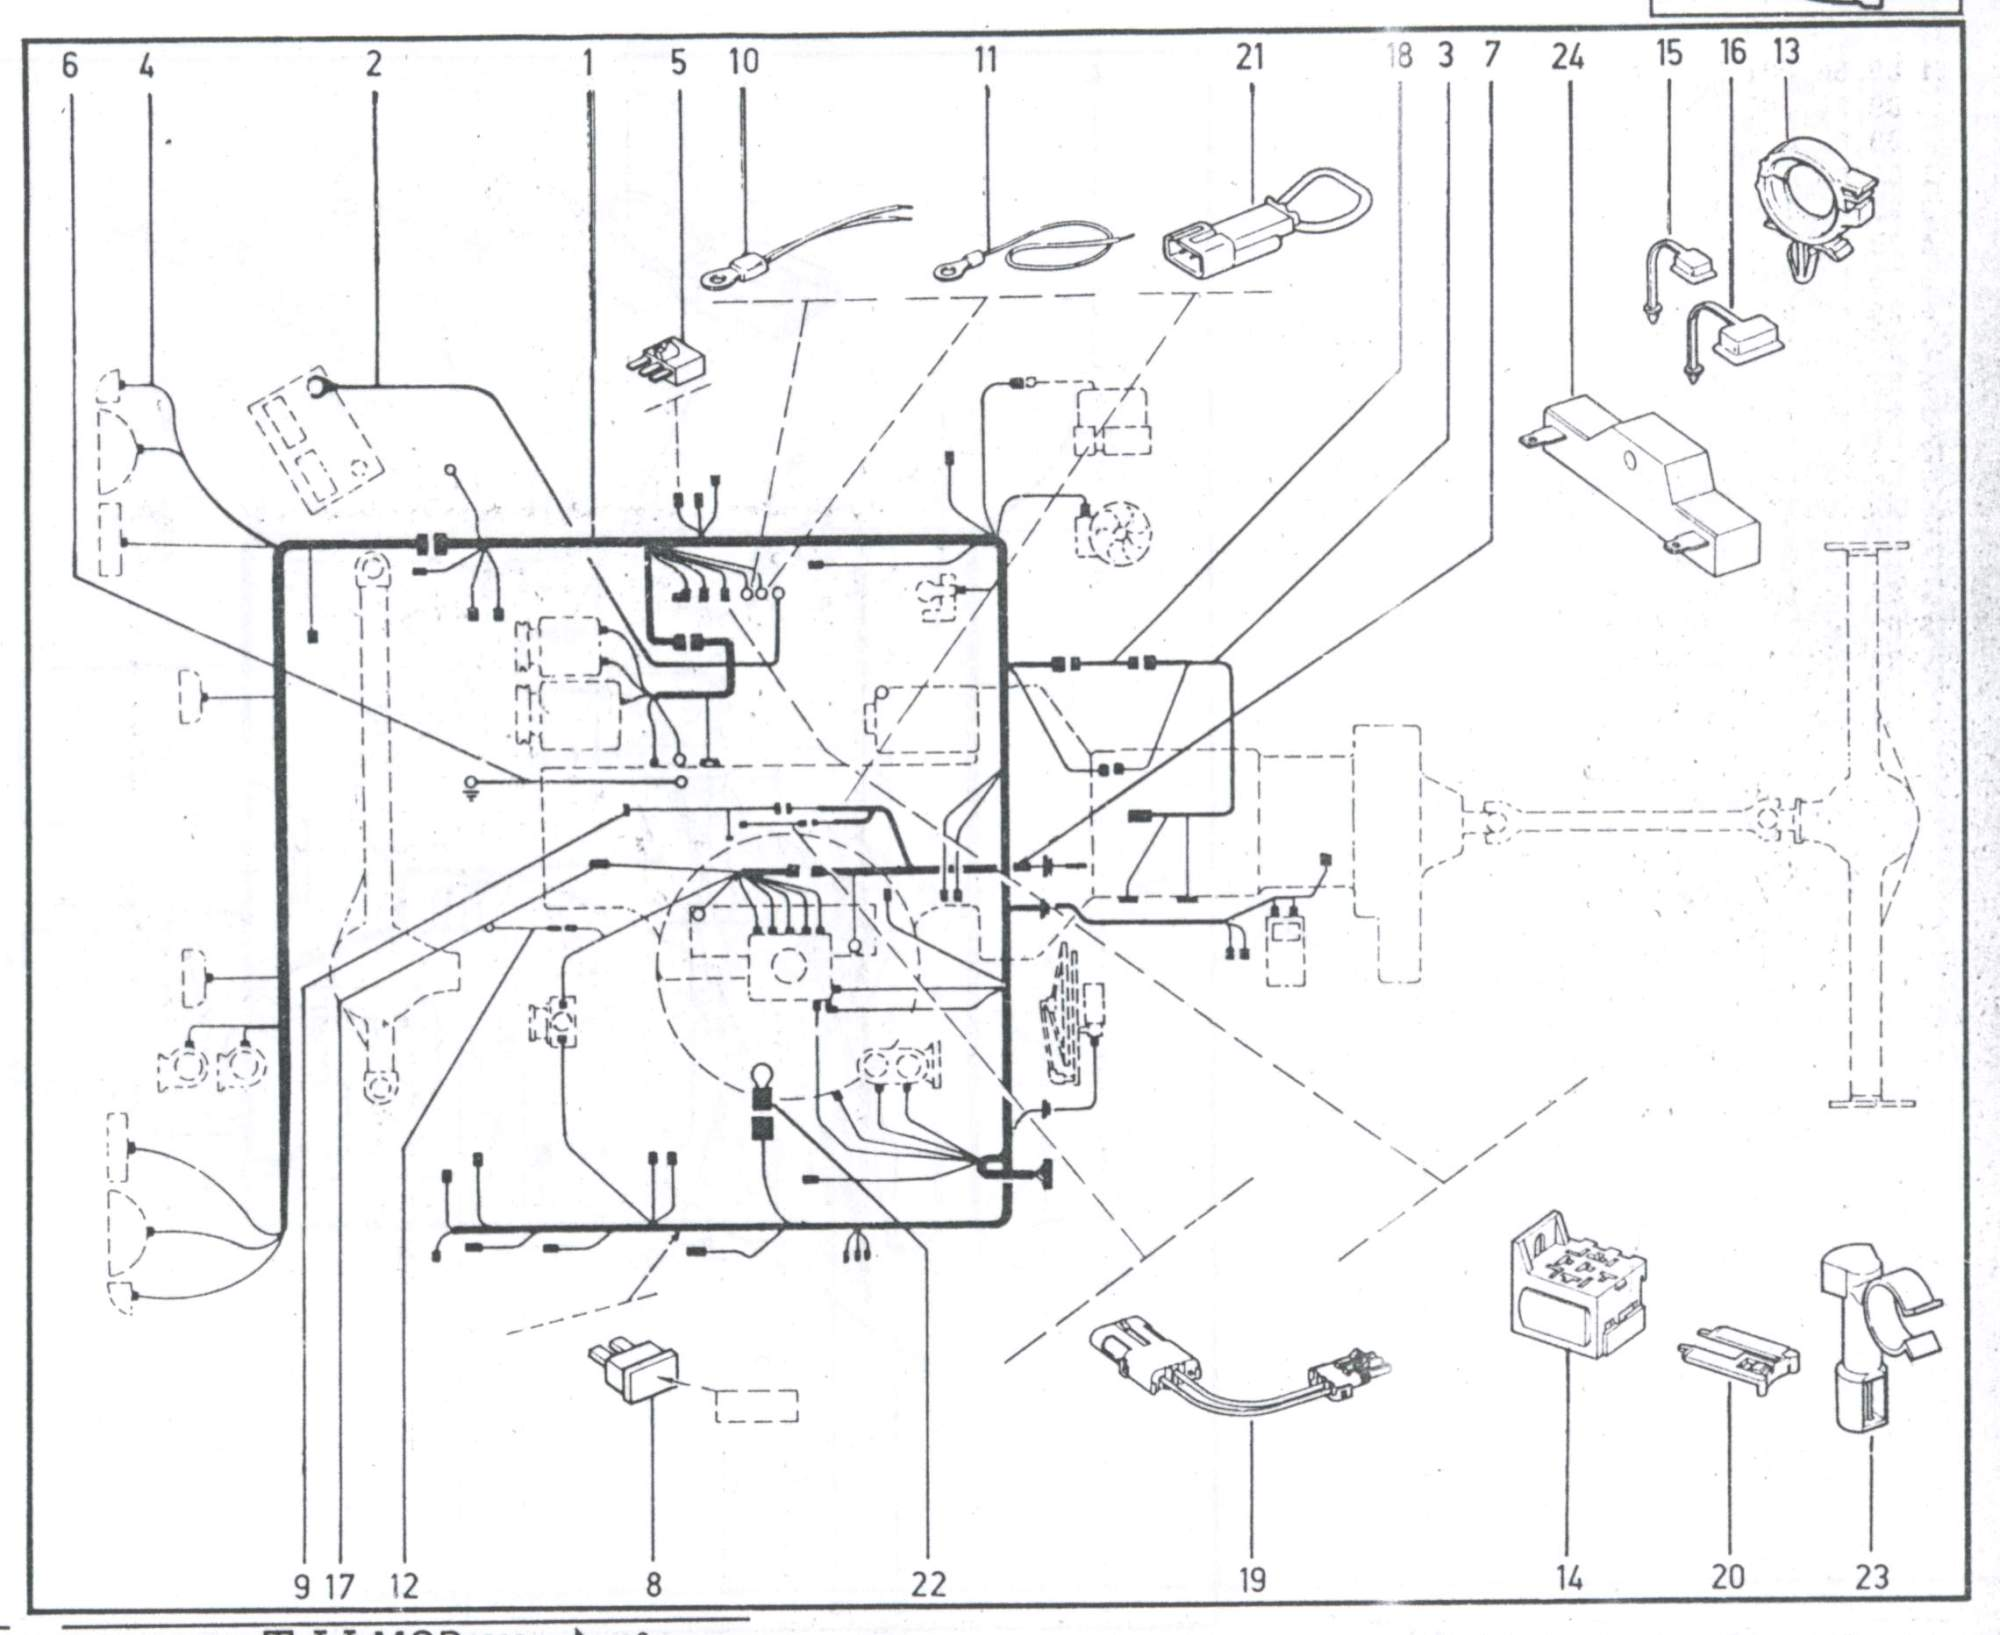 hight resolution of tags industrial wiring diagrams structured wiring diagrams alternator wiring diagram v12 jaguar engine diagram usb to vga wiring diagram jaguar engine